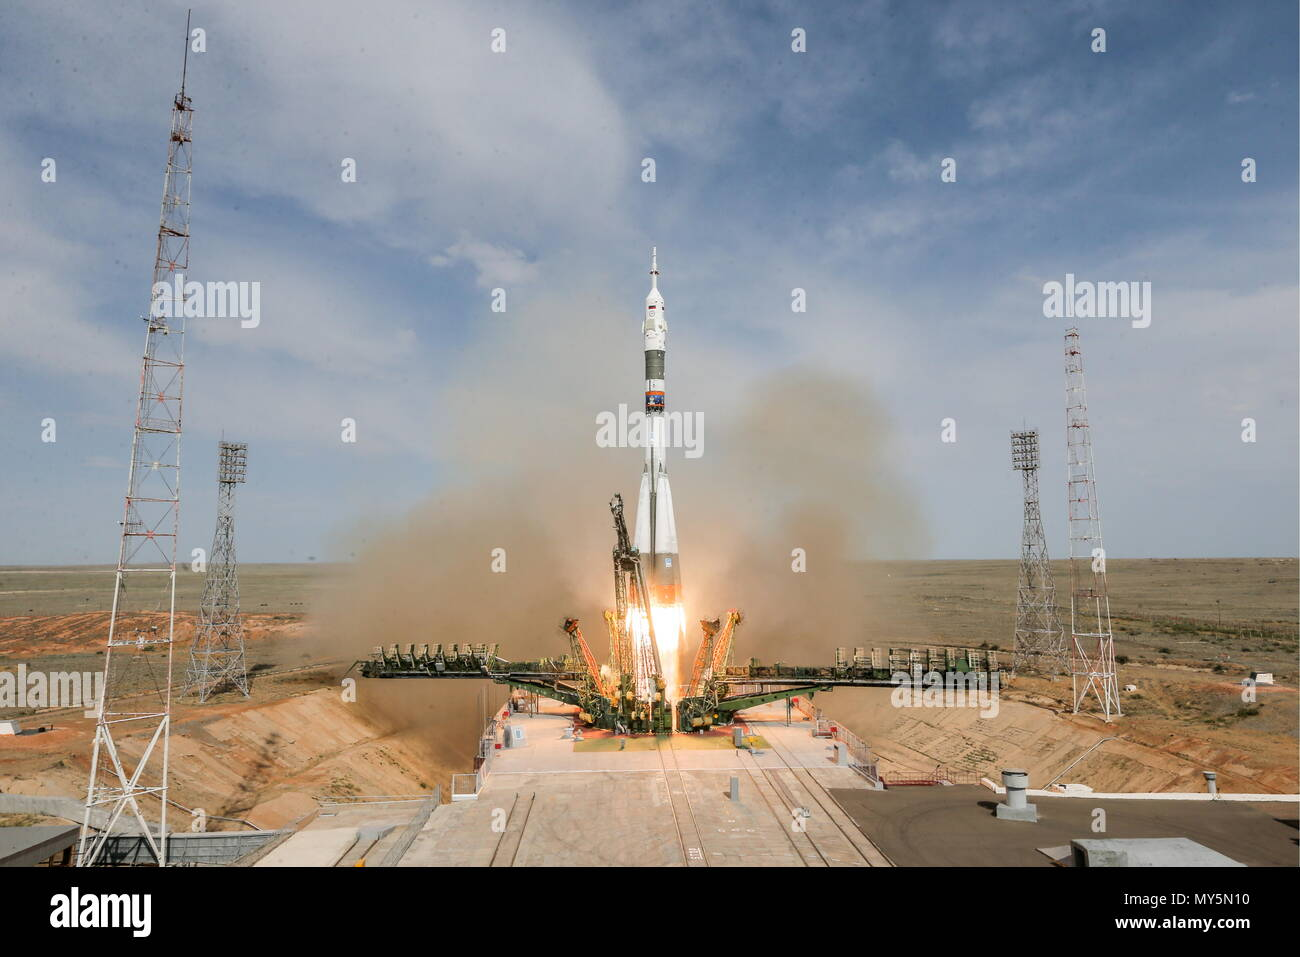 Kazakhstan. 06th June, 2018. KYZYLORDA REGION, KAZAKHSTAN - JUNE 6, 2018: A Soyuz-FG rocket booster carrying the Soyuz MS-09 spacecraft to the International Space Station, has been launched from Gagarin's Start at the Baikonur Cosmodrome. Sergei Savostyanov/TASS Credit: ITAR-TASS News Agency/Alamy Live News - Stock Image